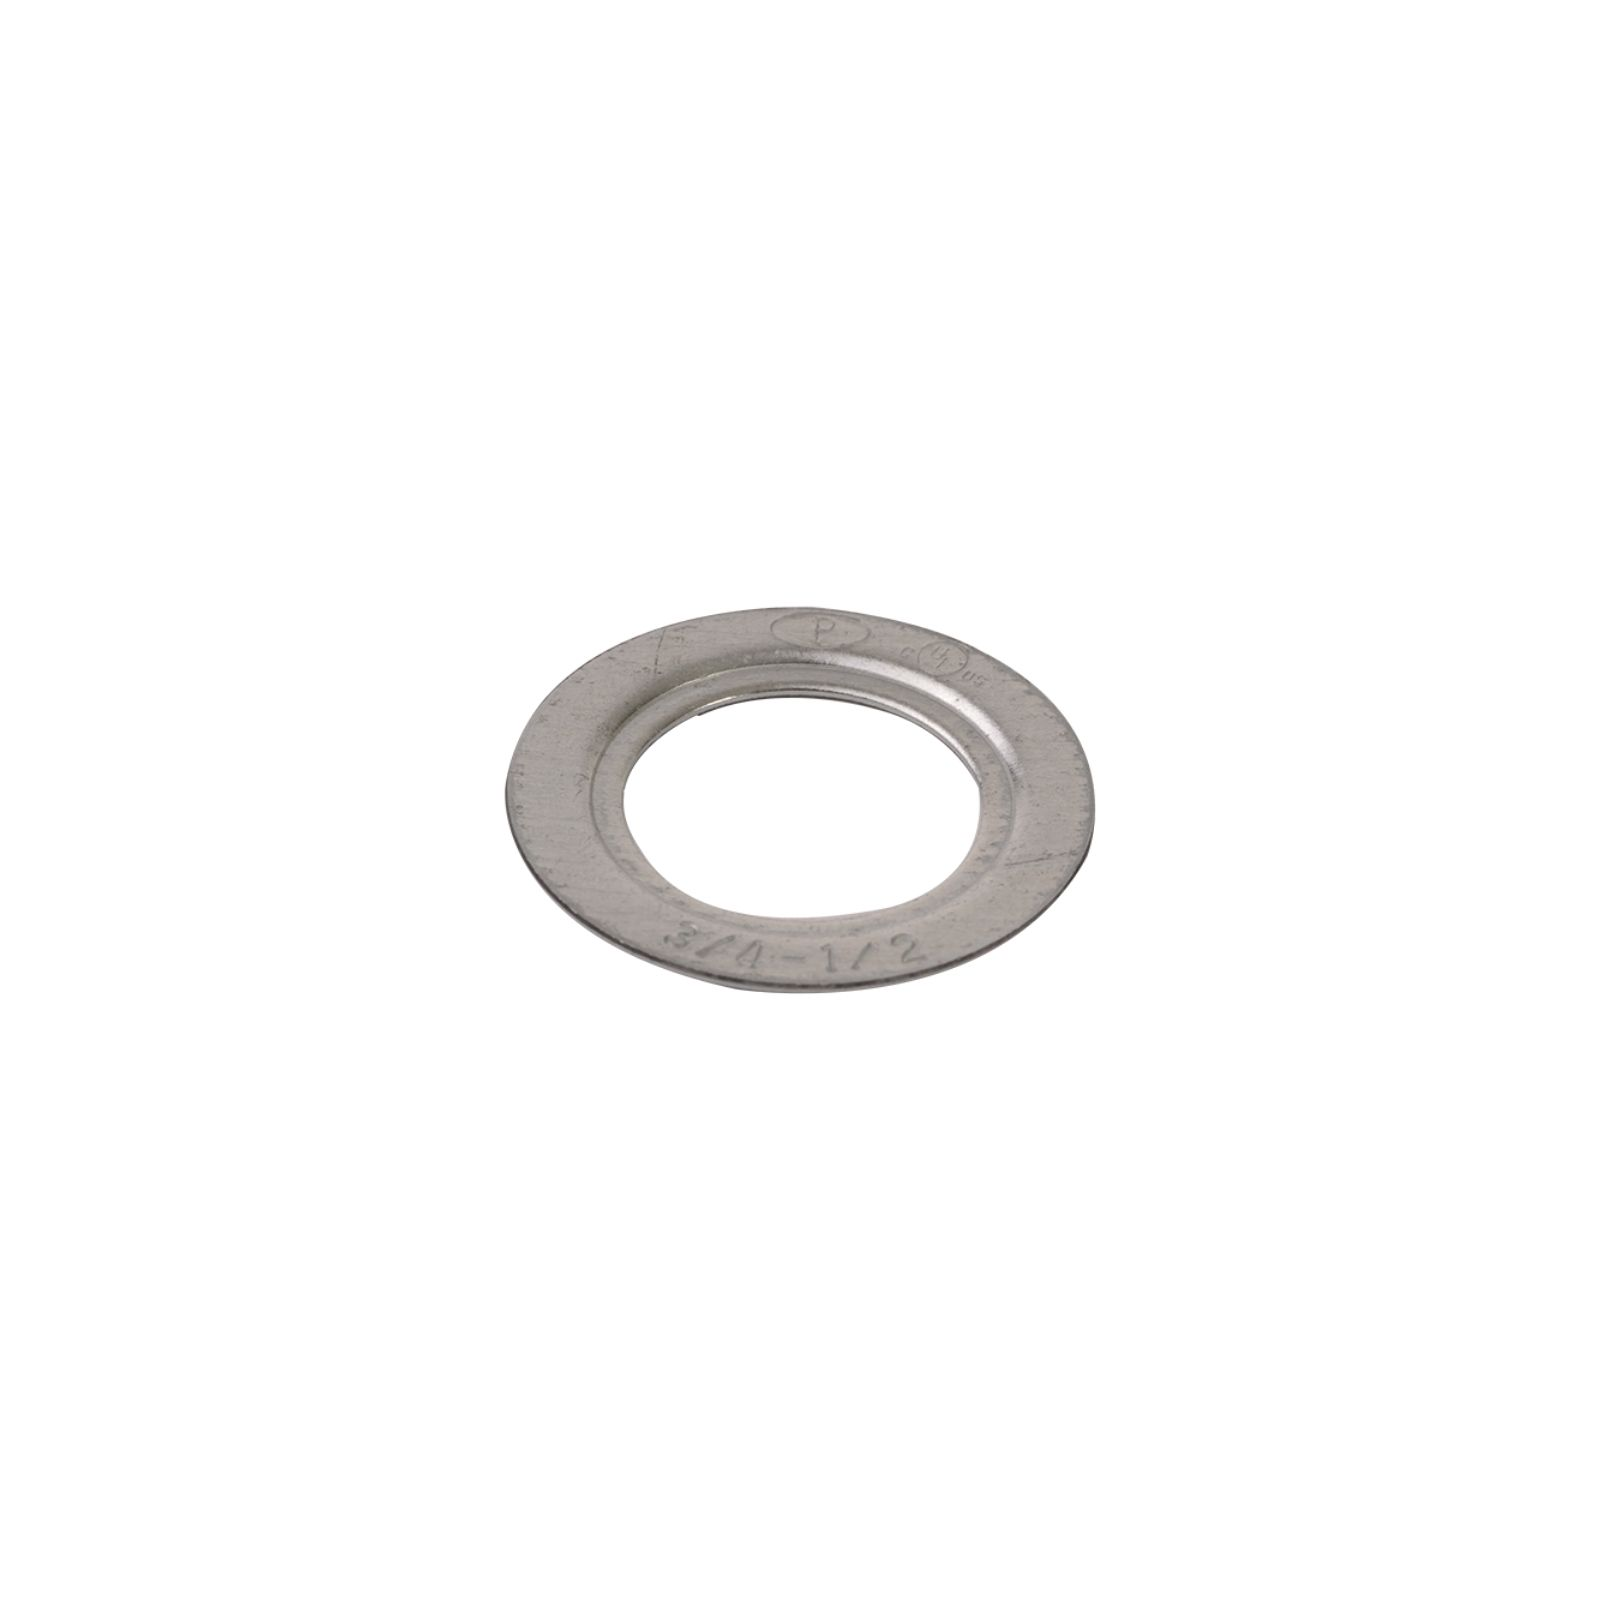 "DiversiTech PI310 - Reducing Washer - Reduces Hole From 3/4"" To 1/2"", Pack of 28"